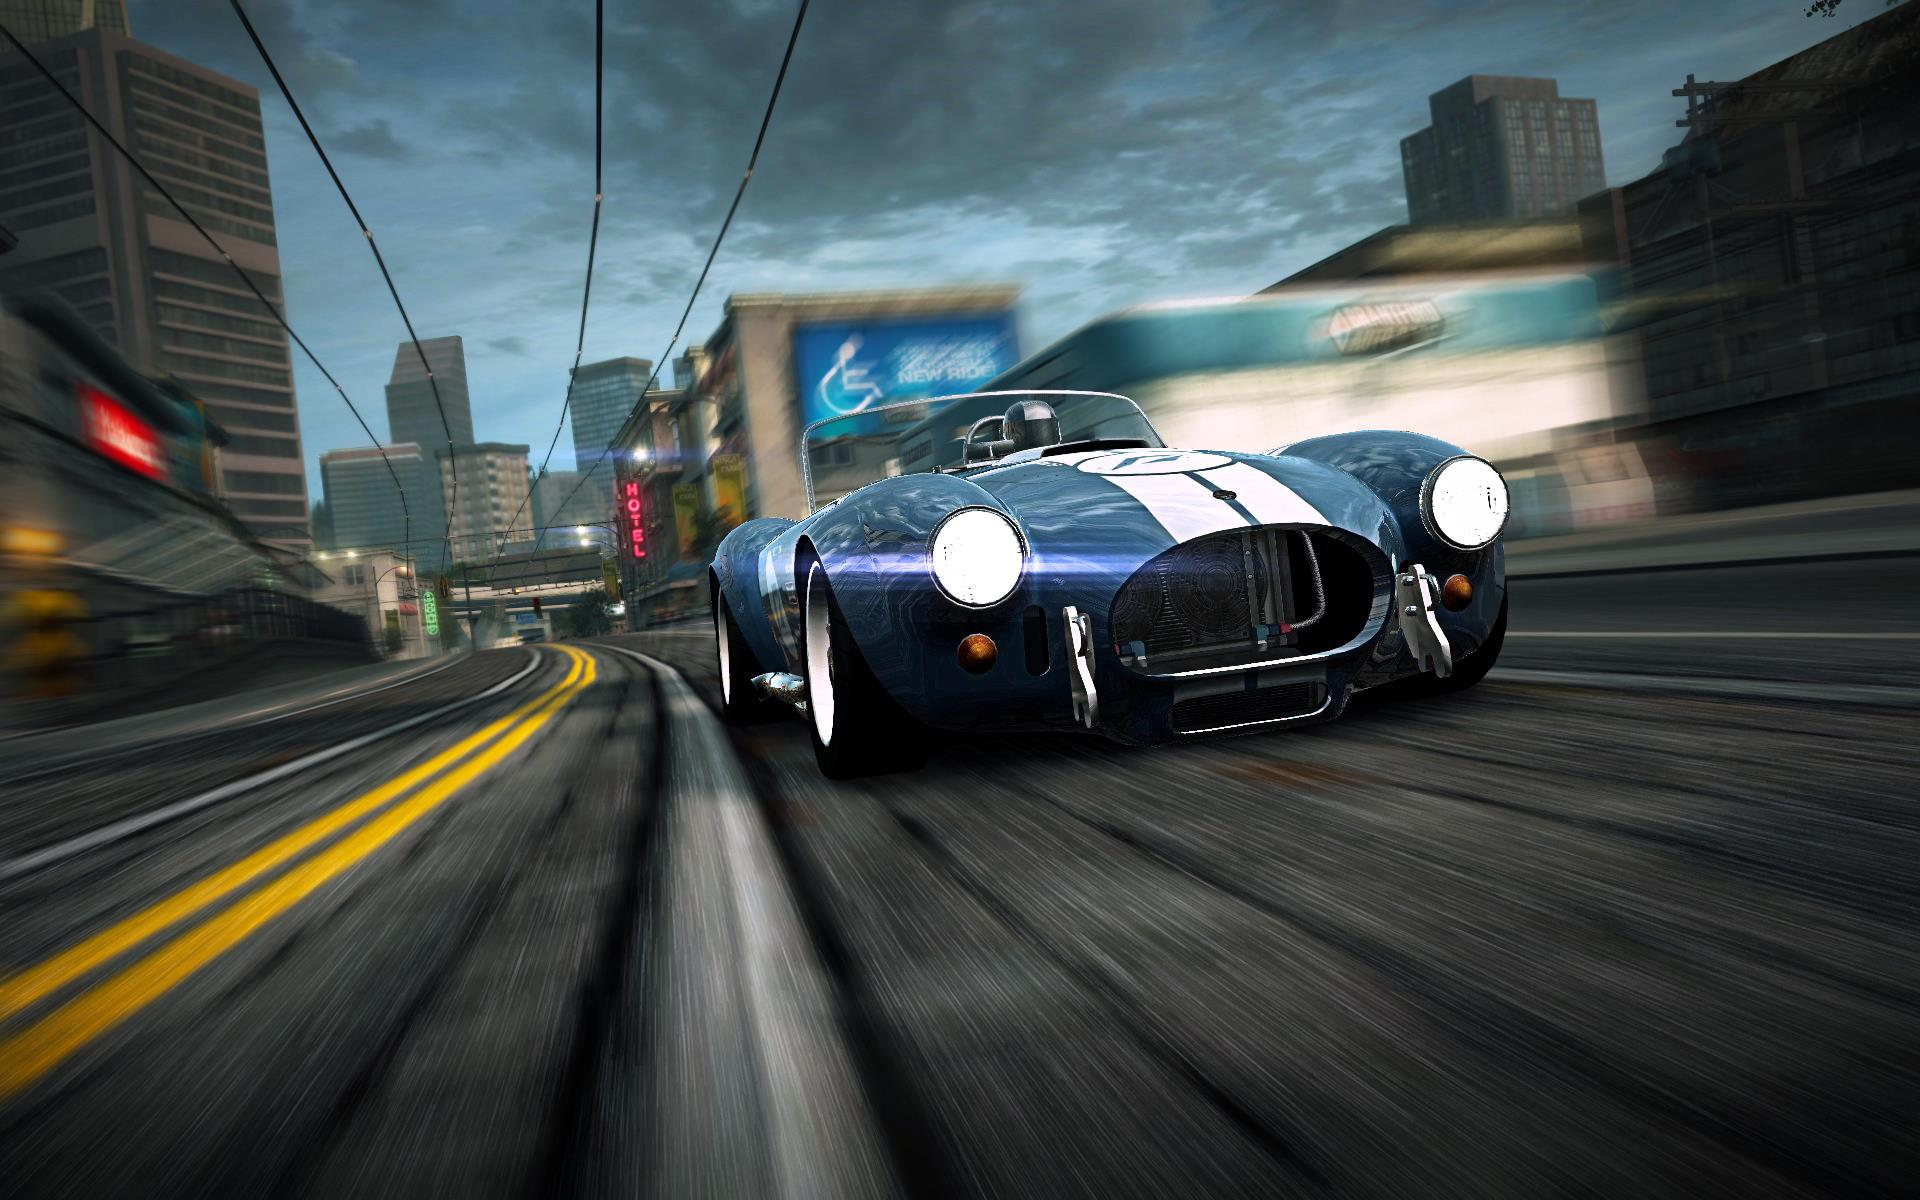 shelby cobra 427s c nfs world wiki fandom powered by wikia. Black Bedroom Furniture Sets. Home Design Ideas